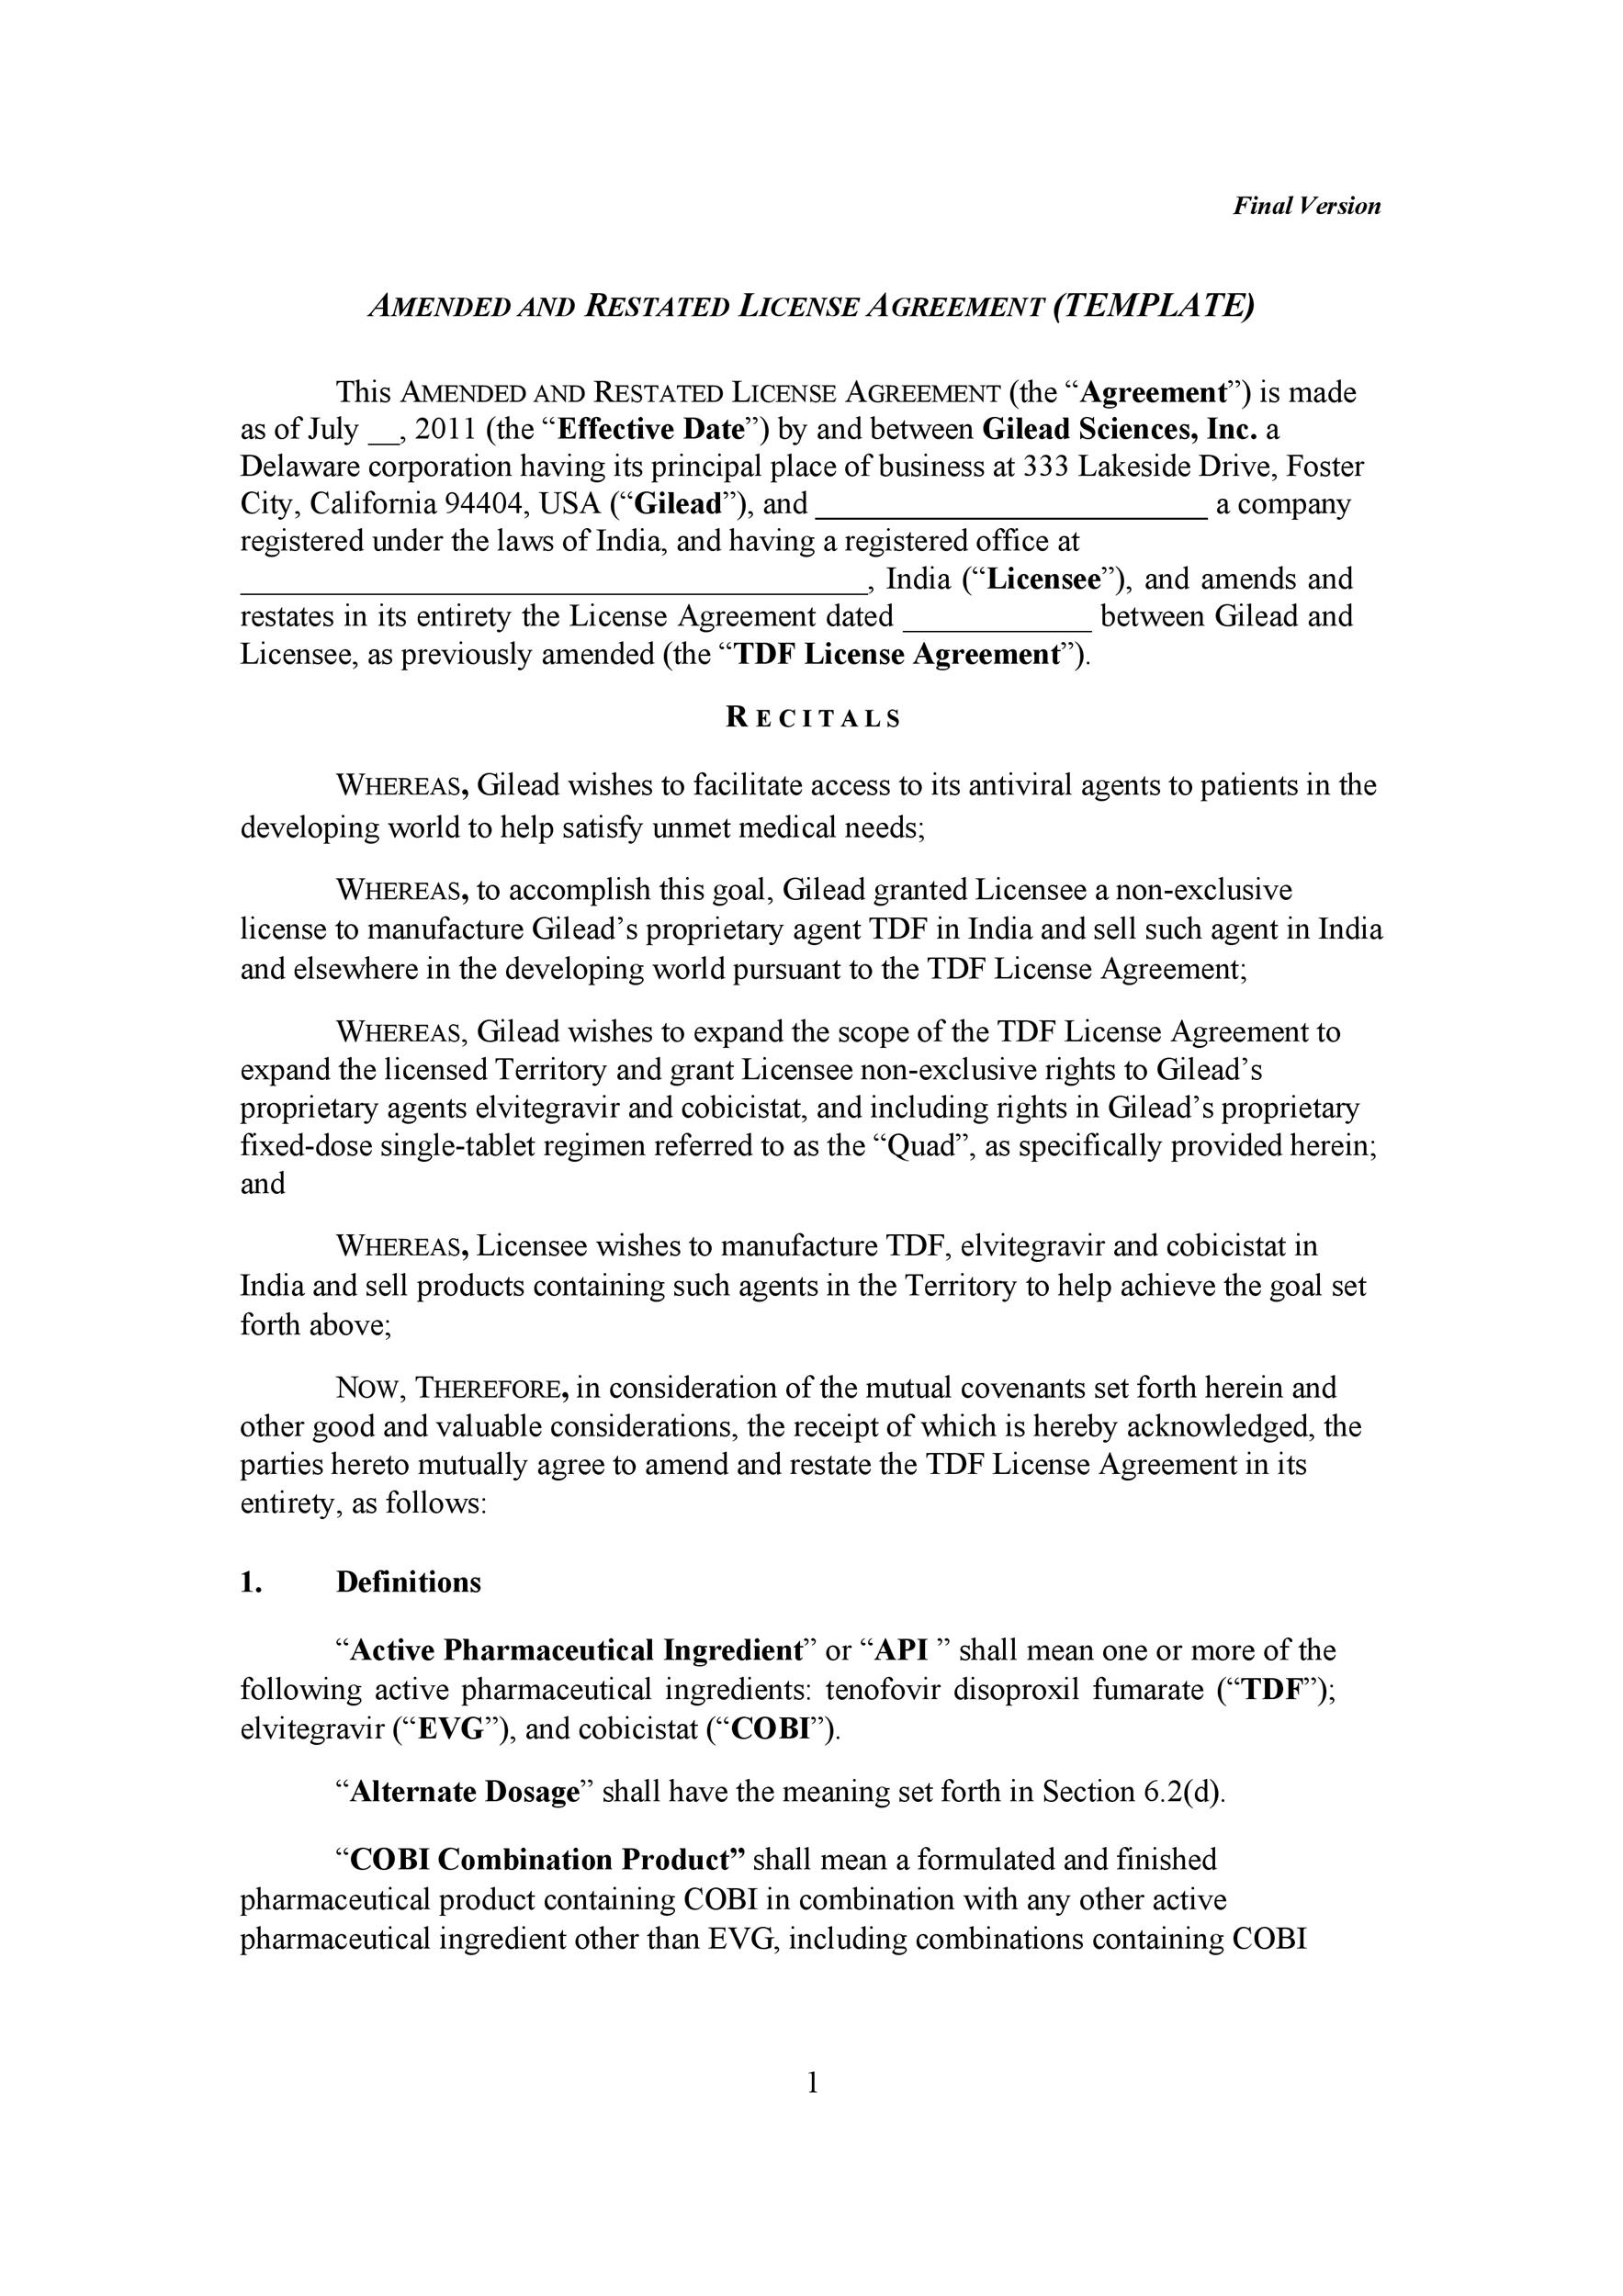 50 Professional License Agreement Templates ᐅ Template Lab